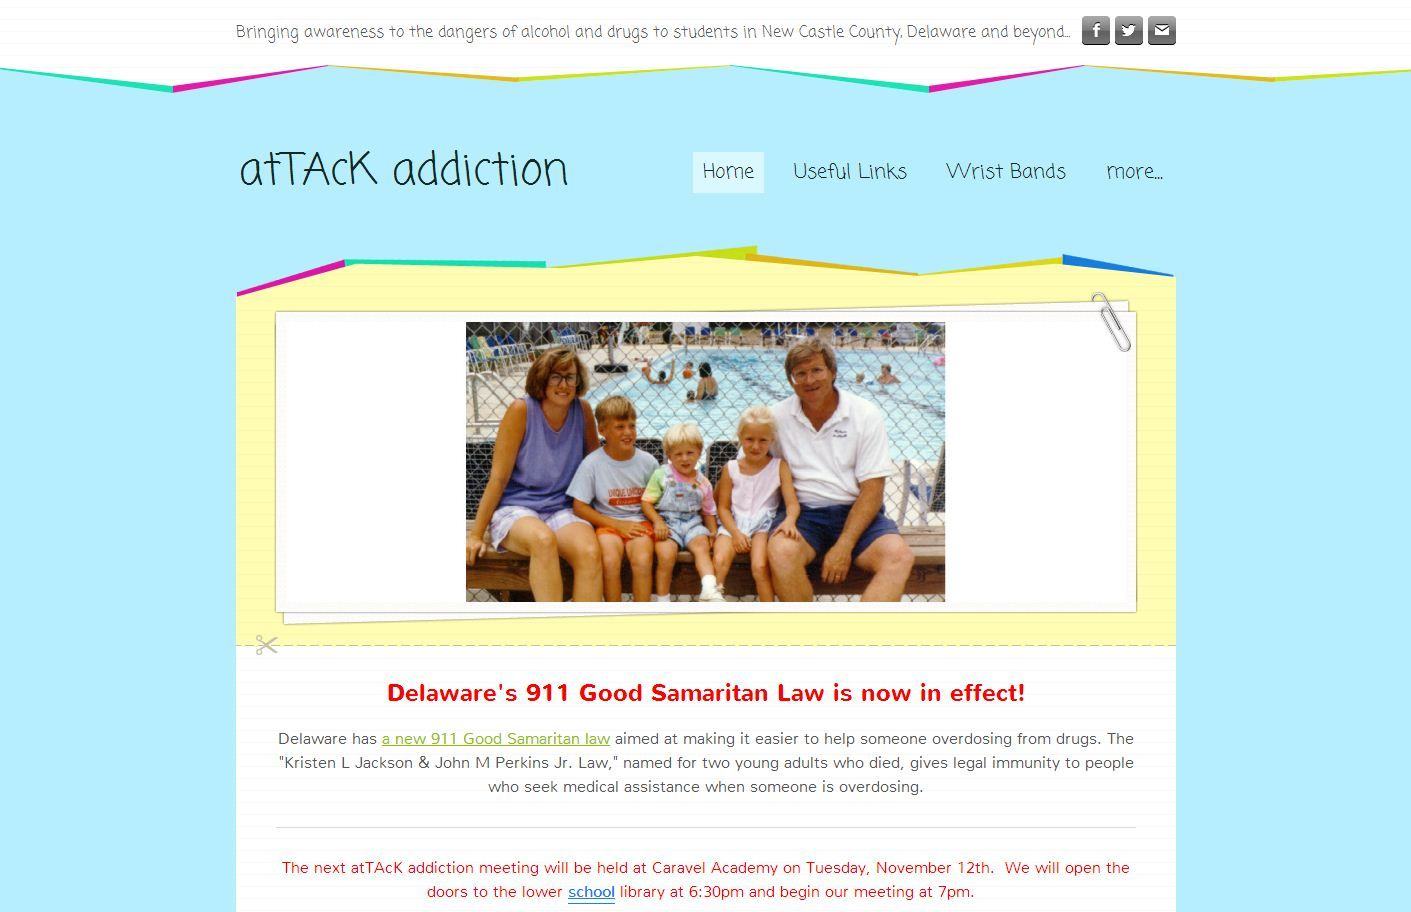 """attackaddiction.com; """"Bringing awareness to the dangers of alcohol and drugs to students in New Castle County, Delaware and beyond..."""" Pinned by the UR Linked cell phone app on October 28, 2013"""